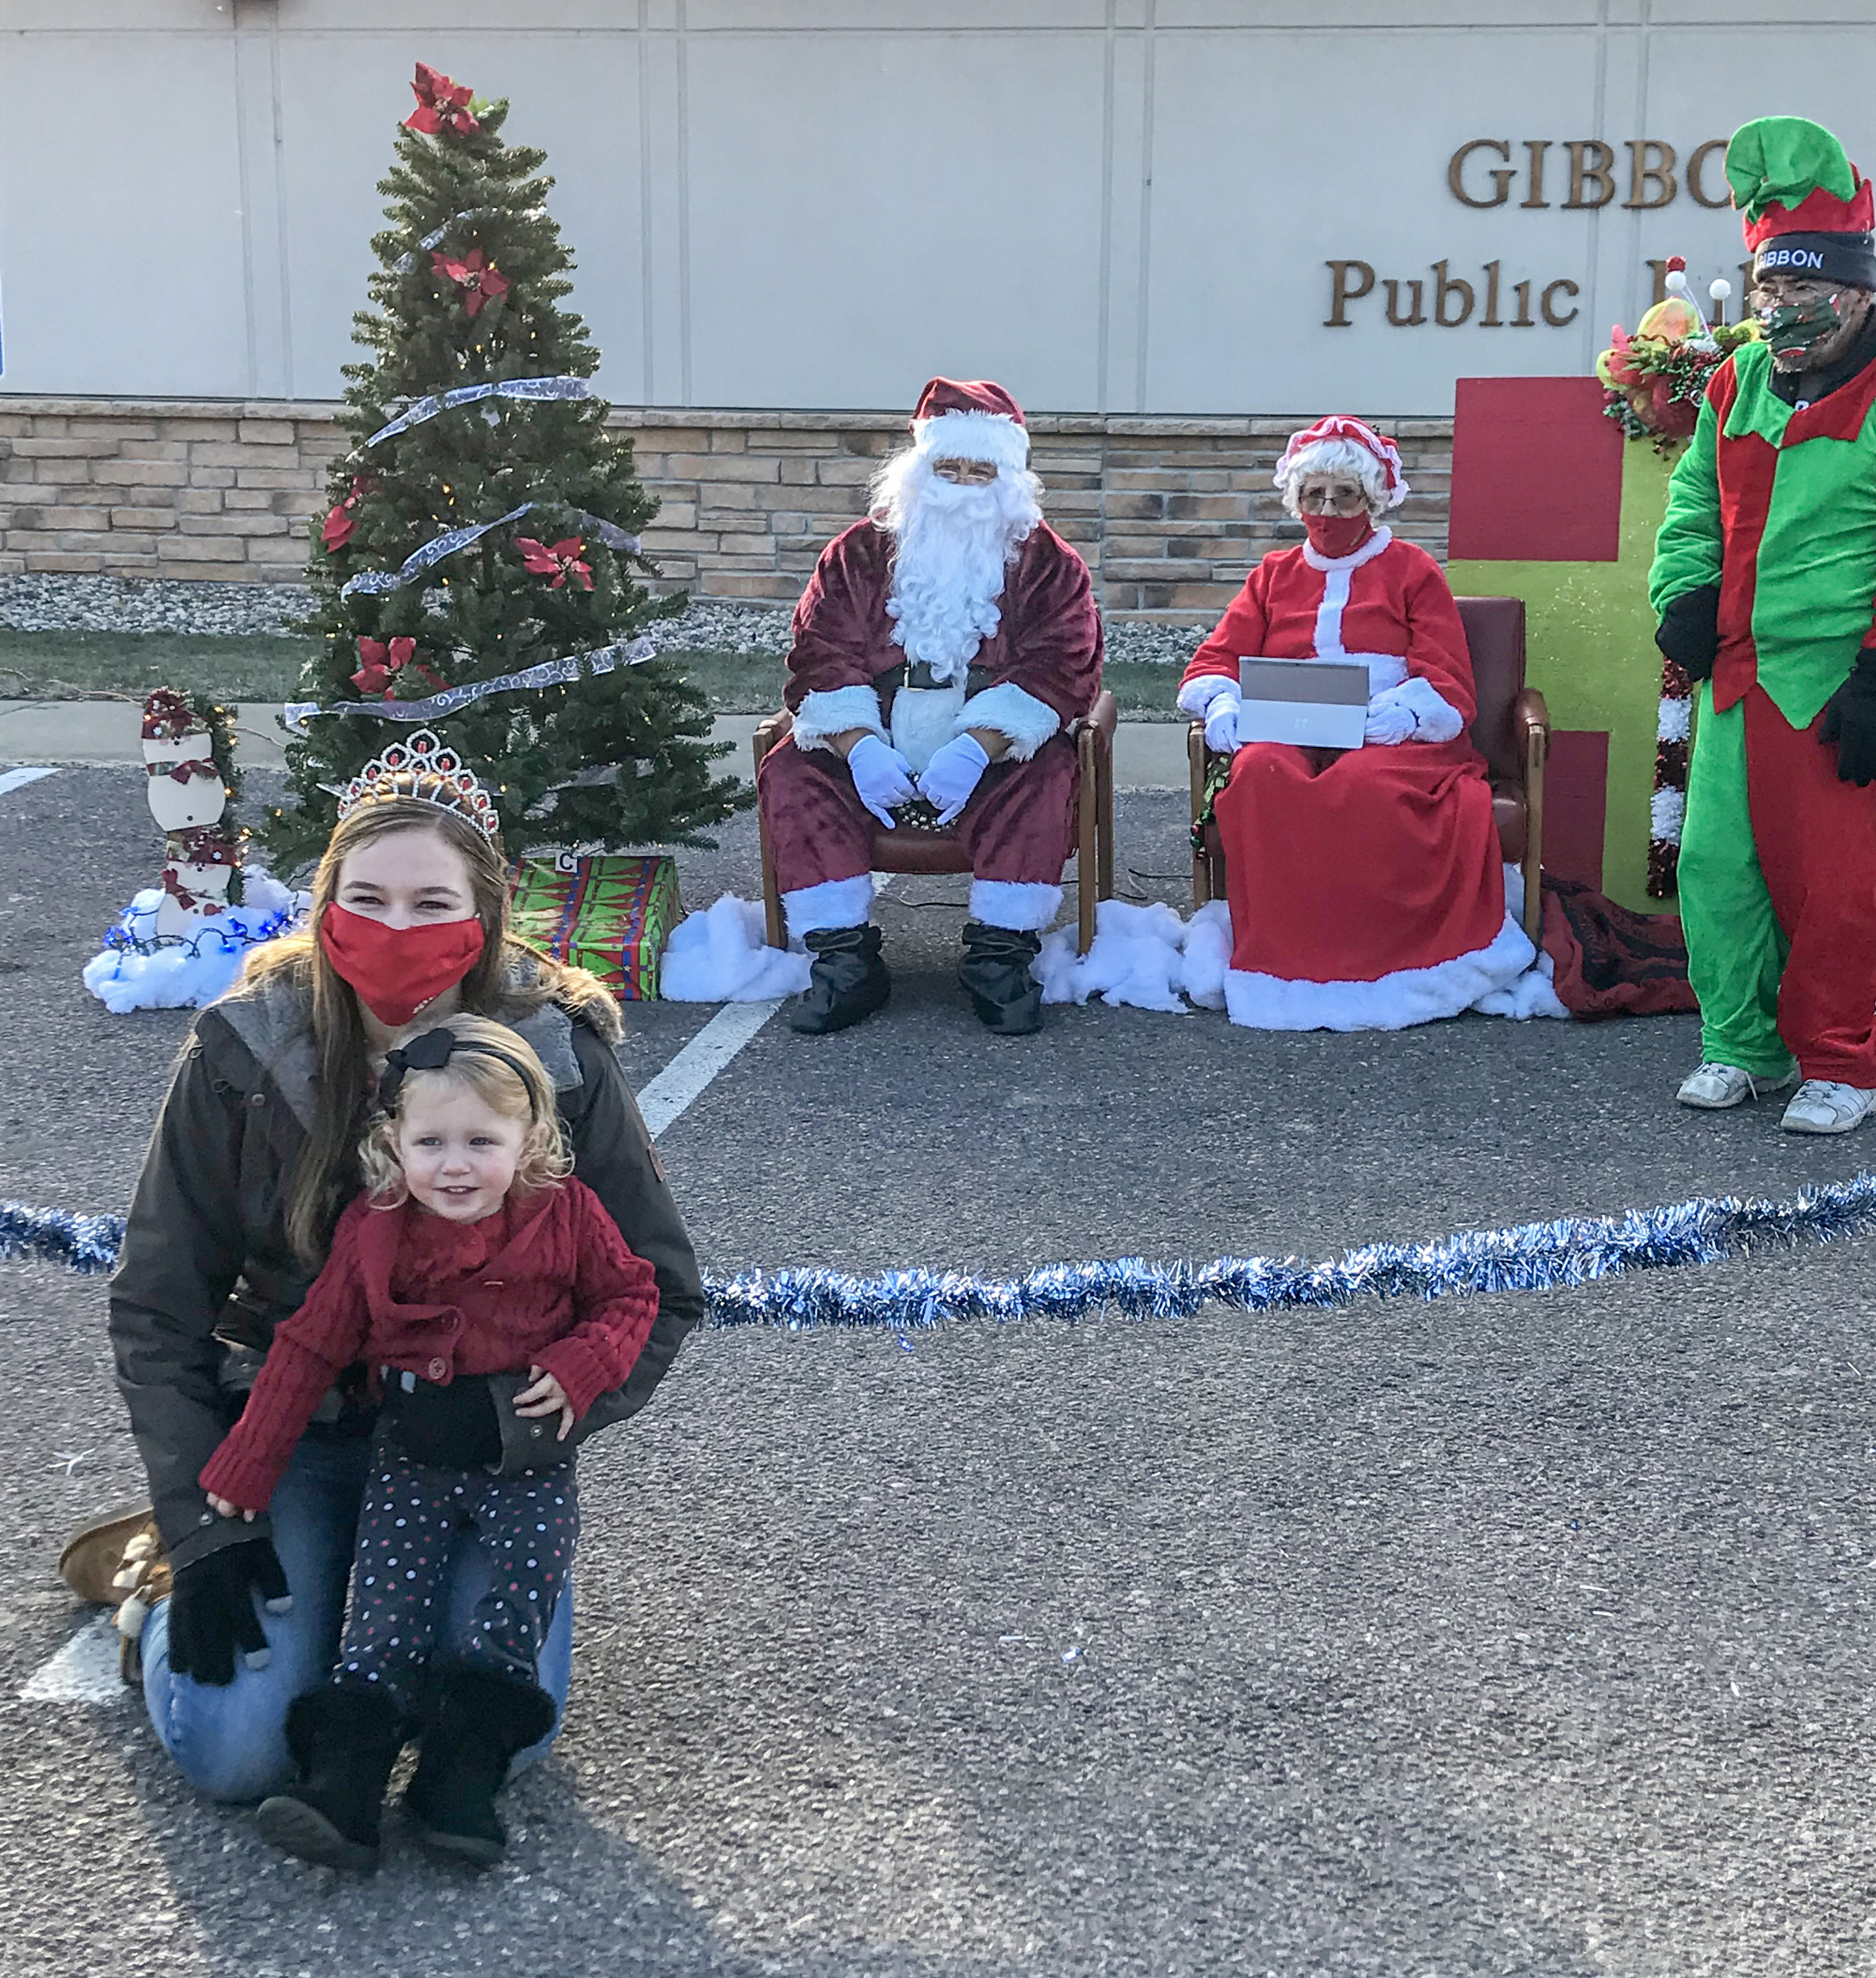 Miss Gibbon, Baleigh Peterson, poses with her little sister and Santa and Mrs. Claus.